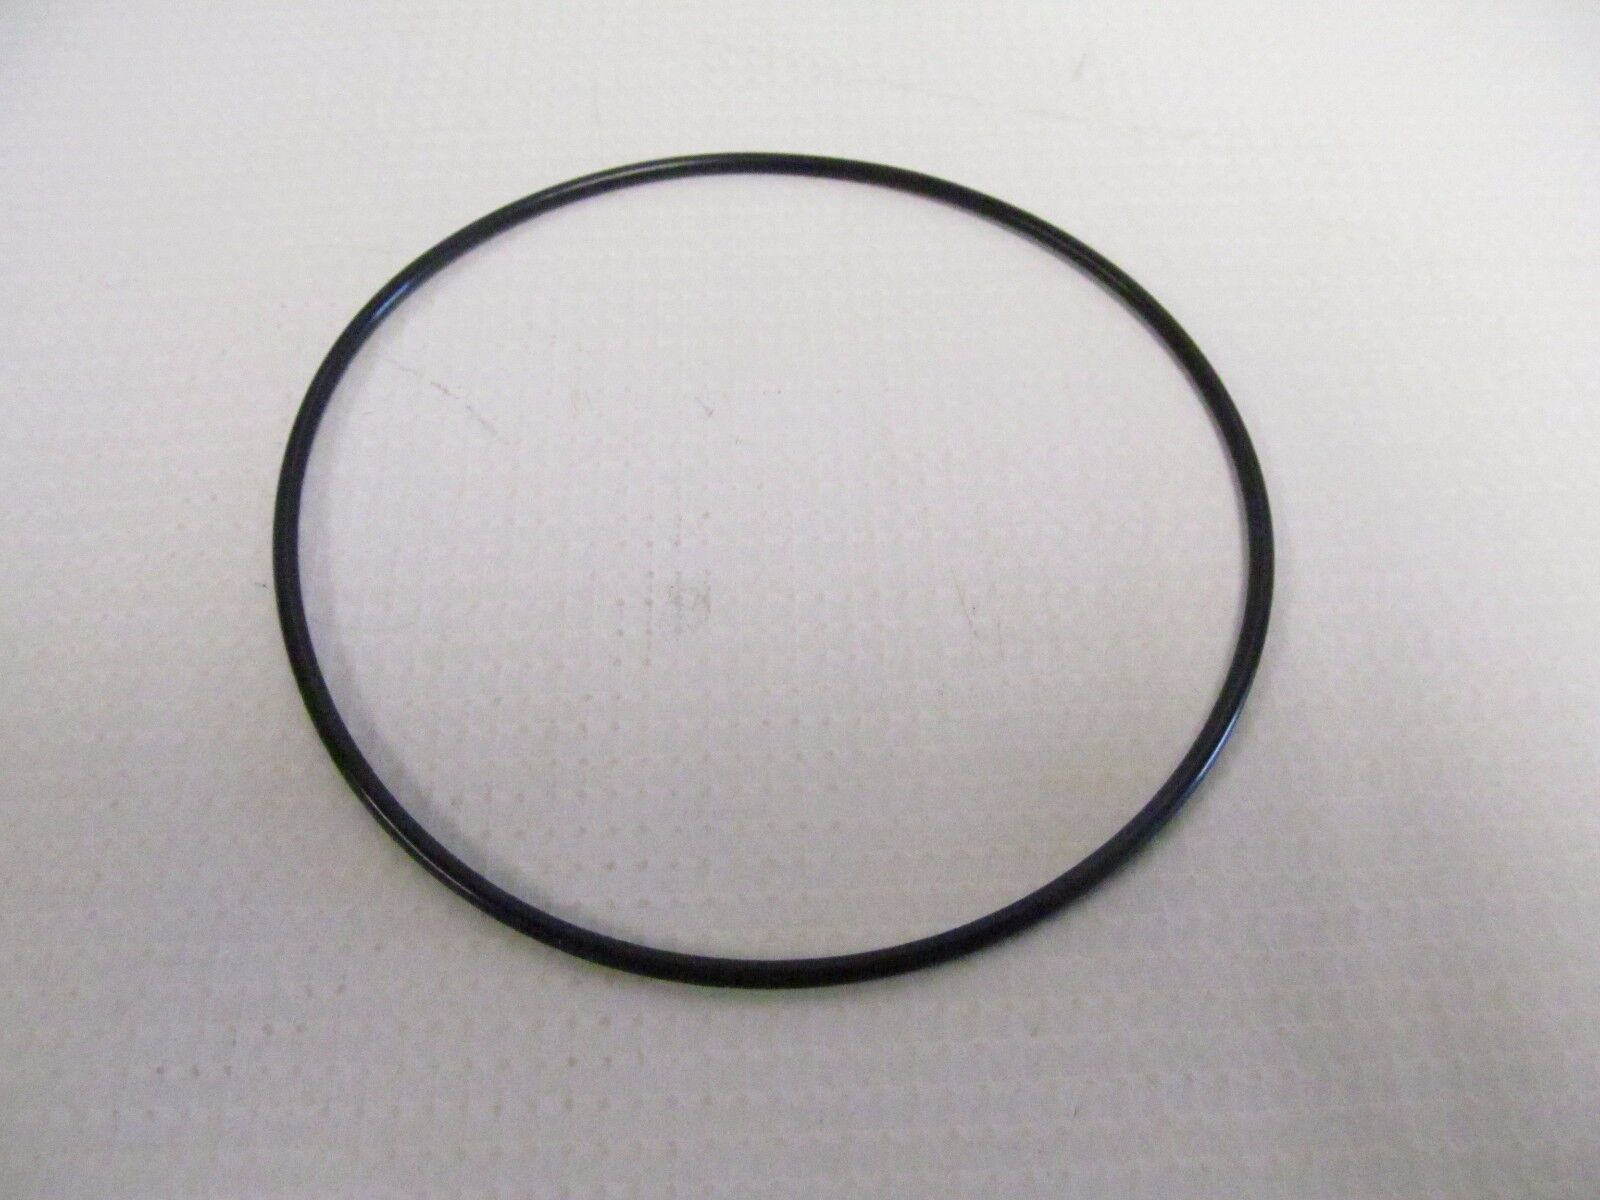 OEM Arctic Cat Snowmobile Inner Head O-Ring See Listing for Fitment 3005-854